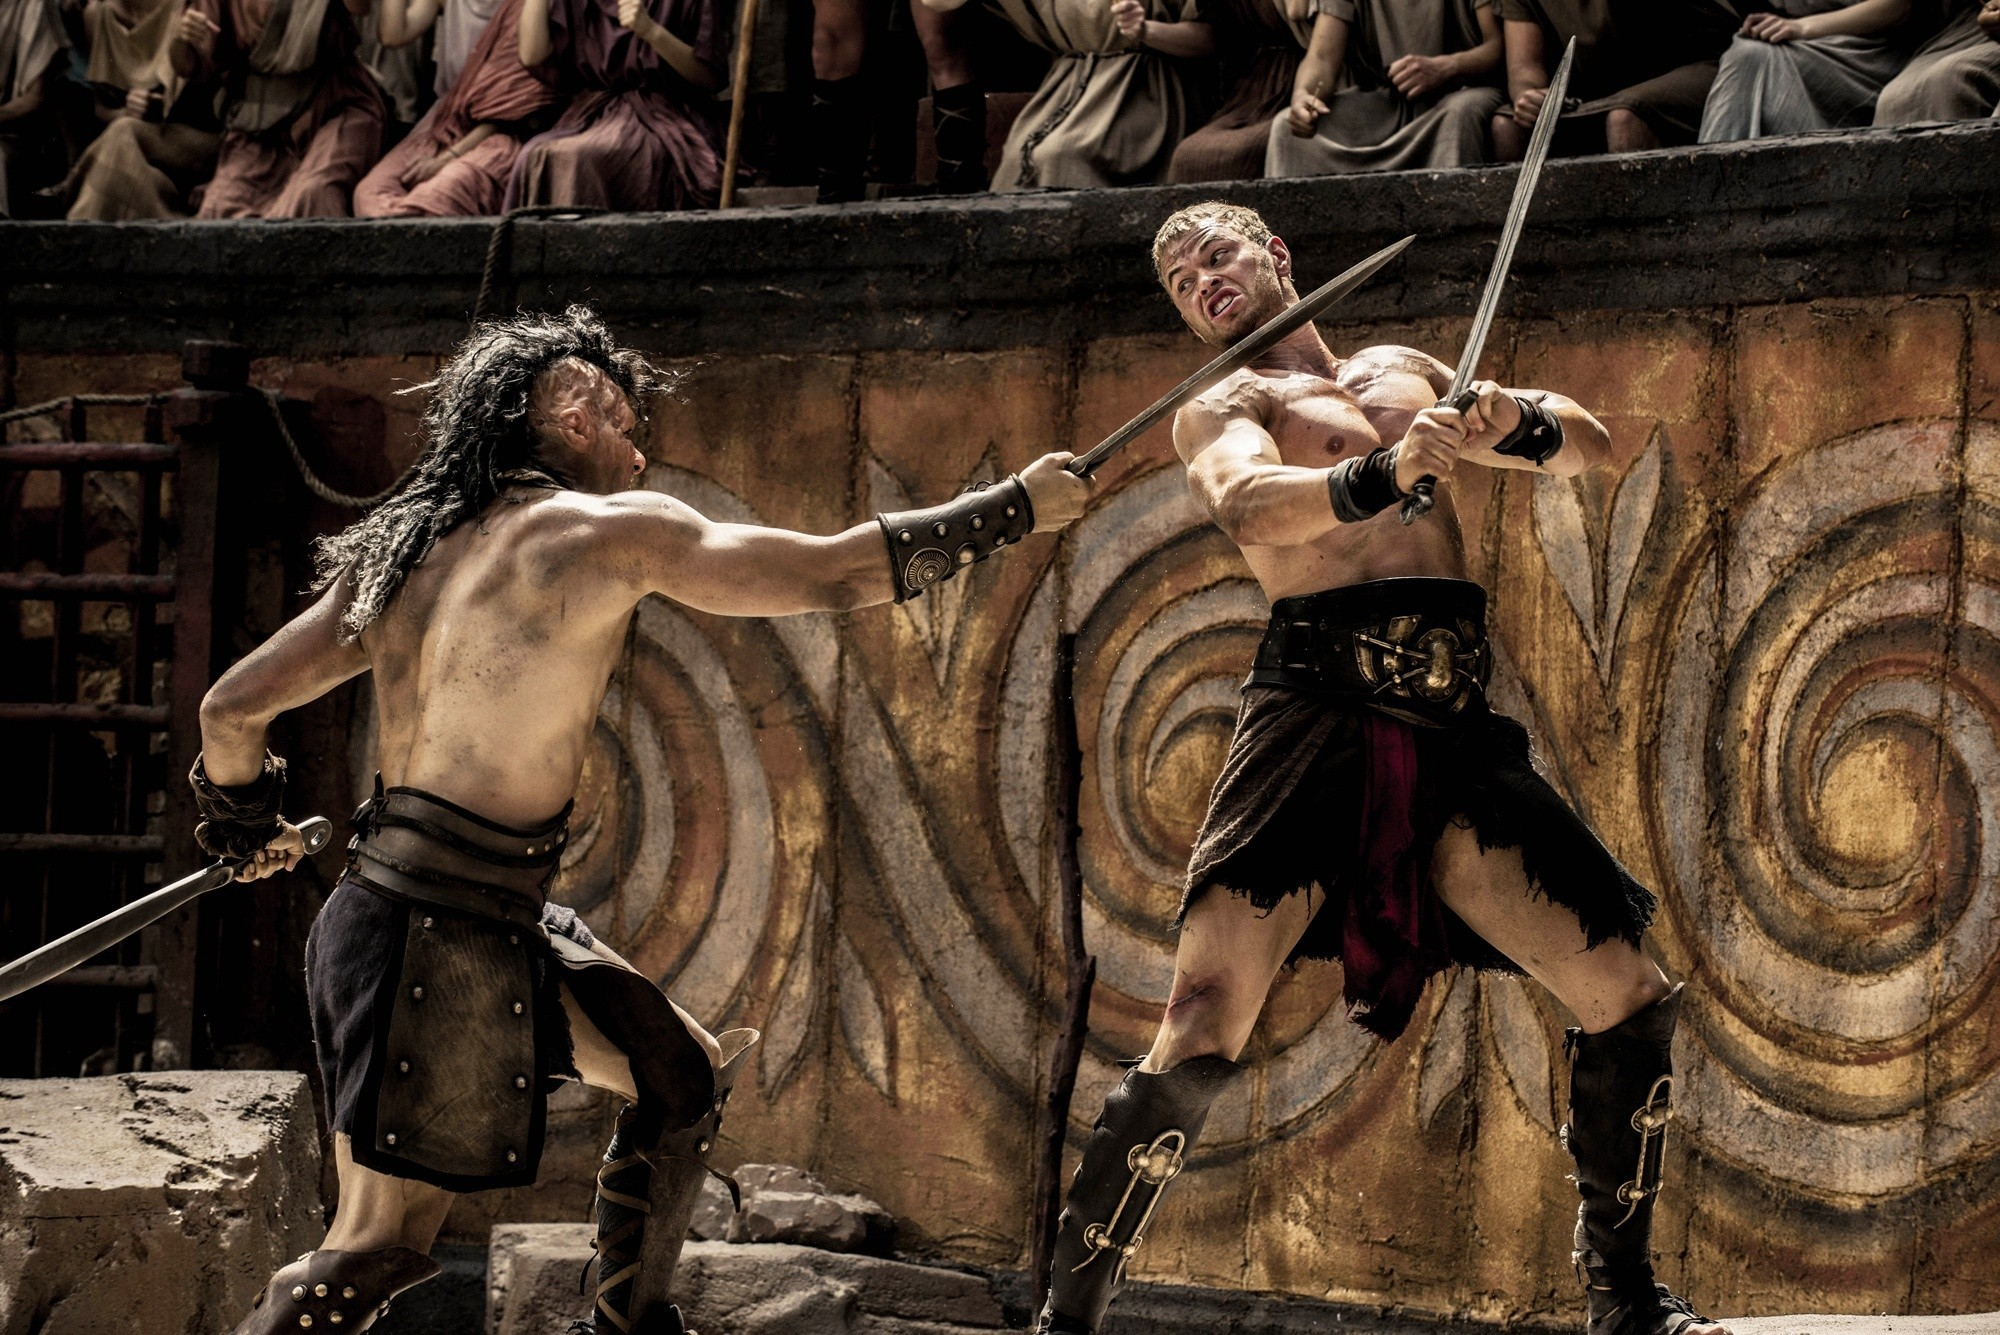 the legend of hercules The legend of hercules synopsis in the epic origin story, kellan lutz stars as the mythical greek hero - the son of zeus, a half-god, half-man blessed with extraordinary strength.